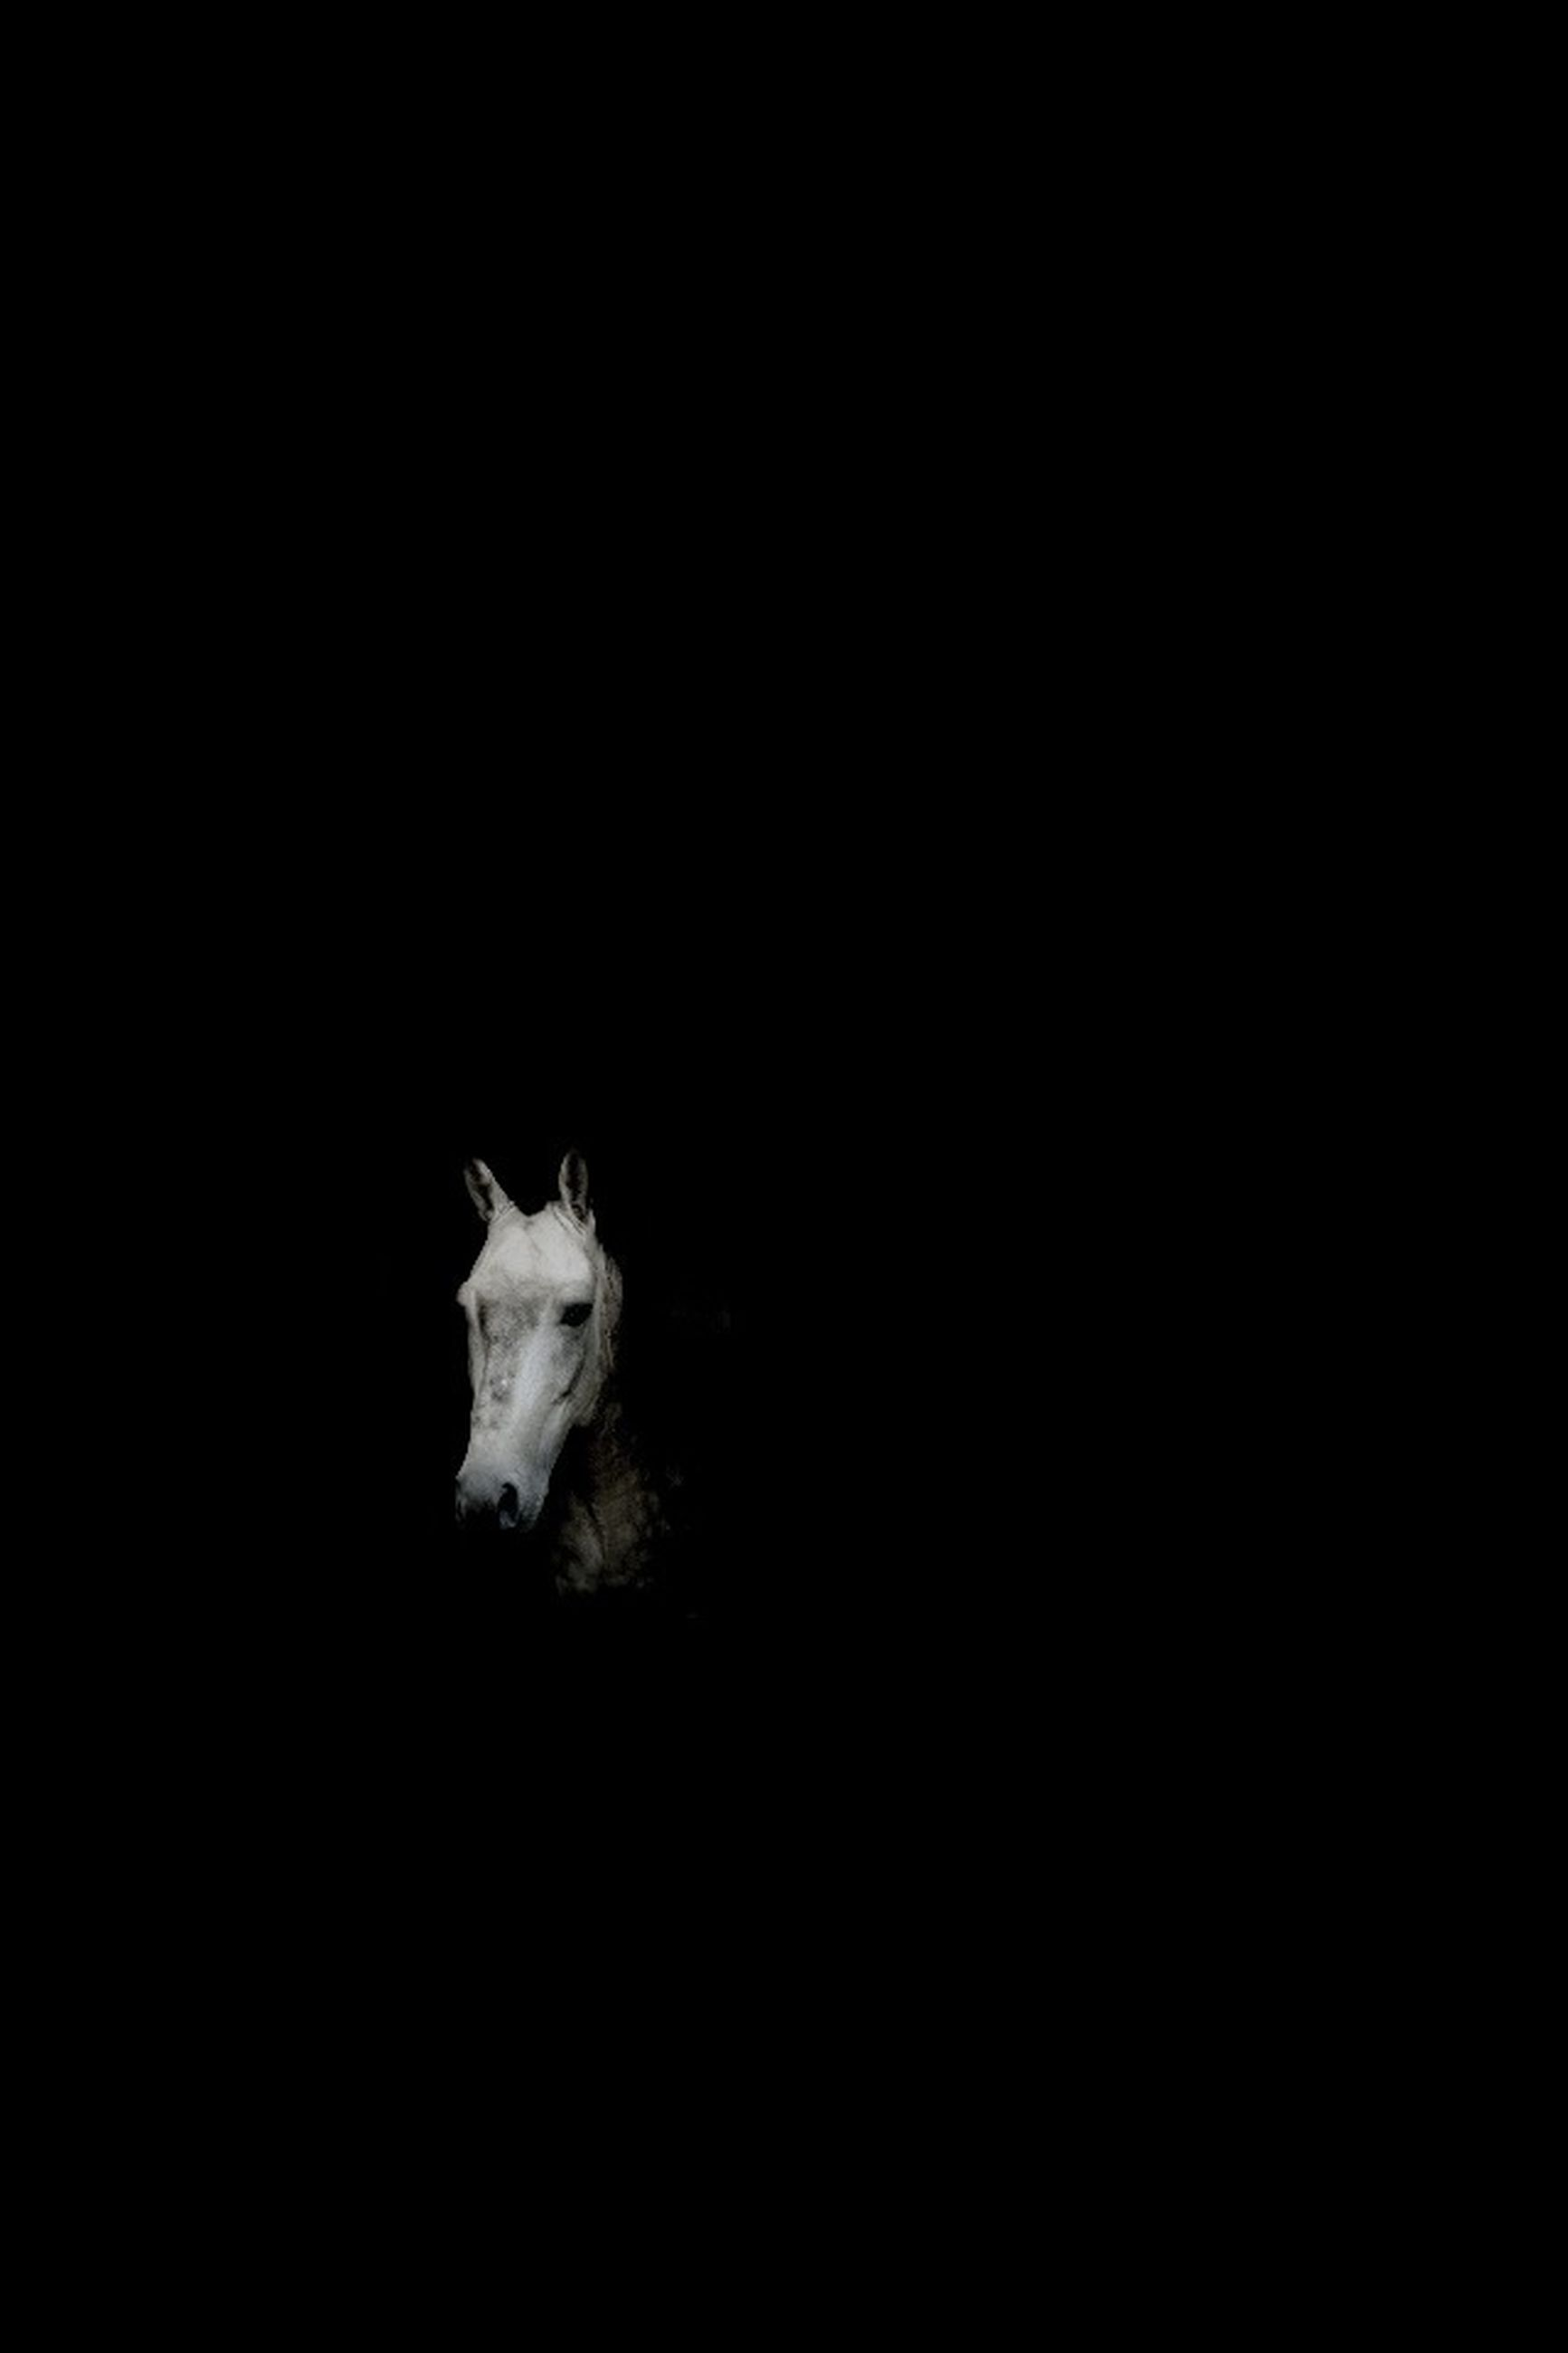 black background, studio shot, copy space, one animal, animal themes, night, cut out, wildlife, close-up, dark, white color, nature, no people, animals in the wild, single object, beauty in nature, white, high angle view, outdoors, vignette